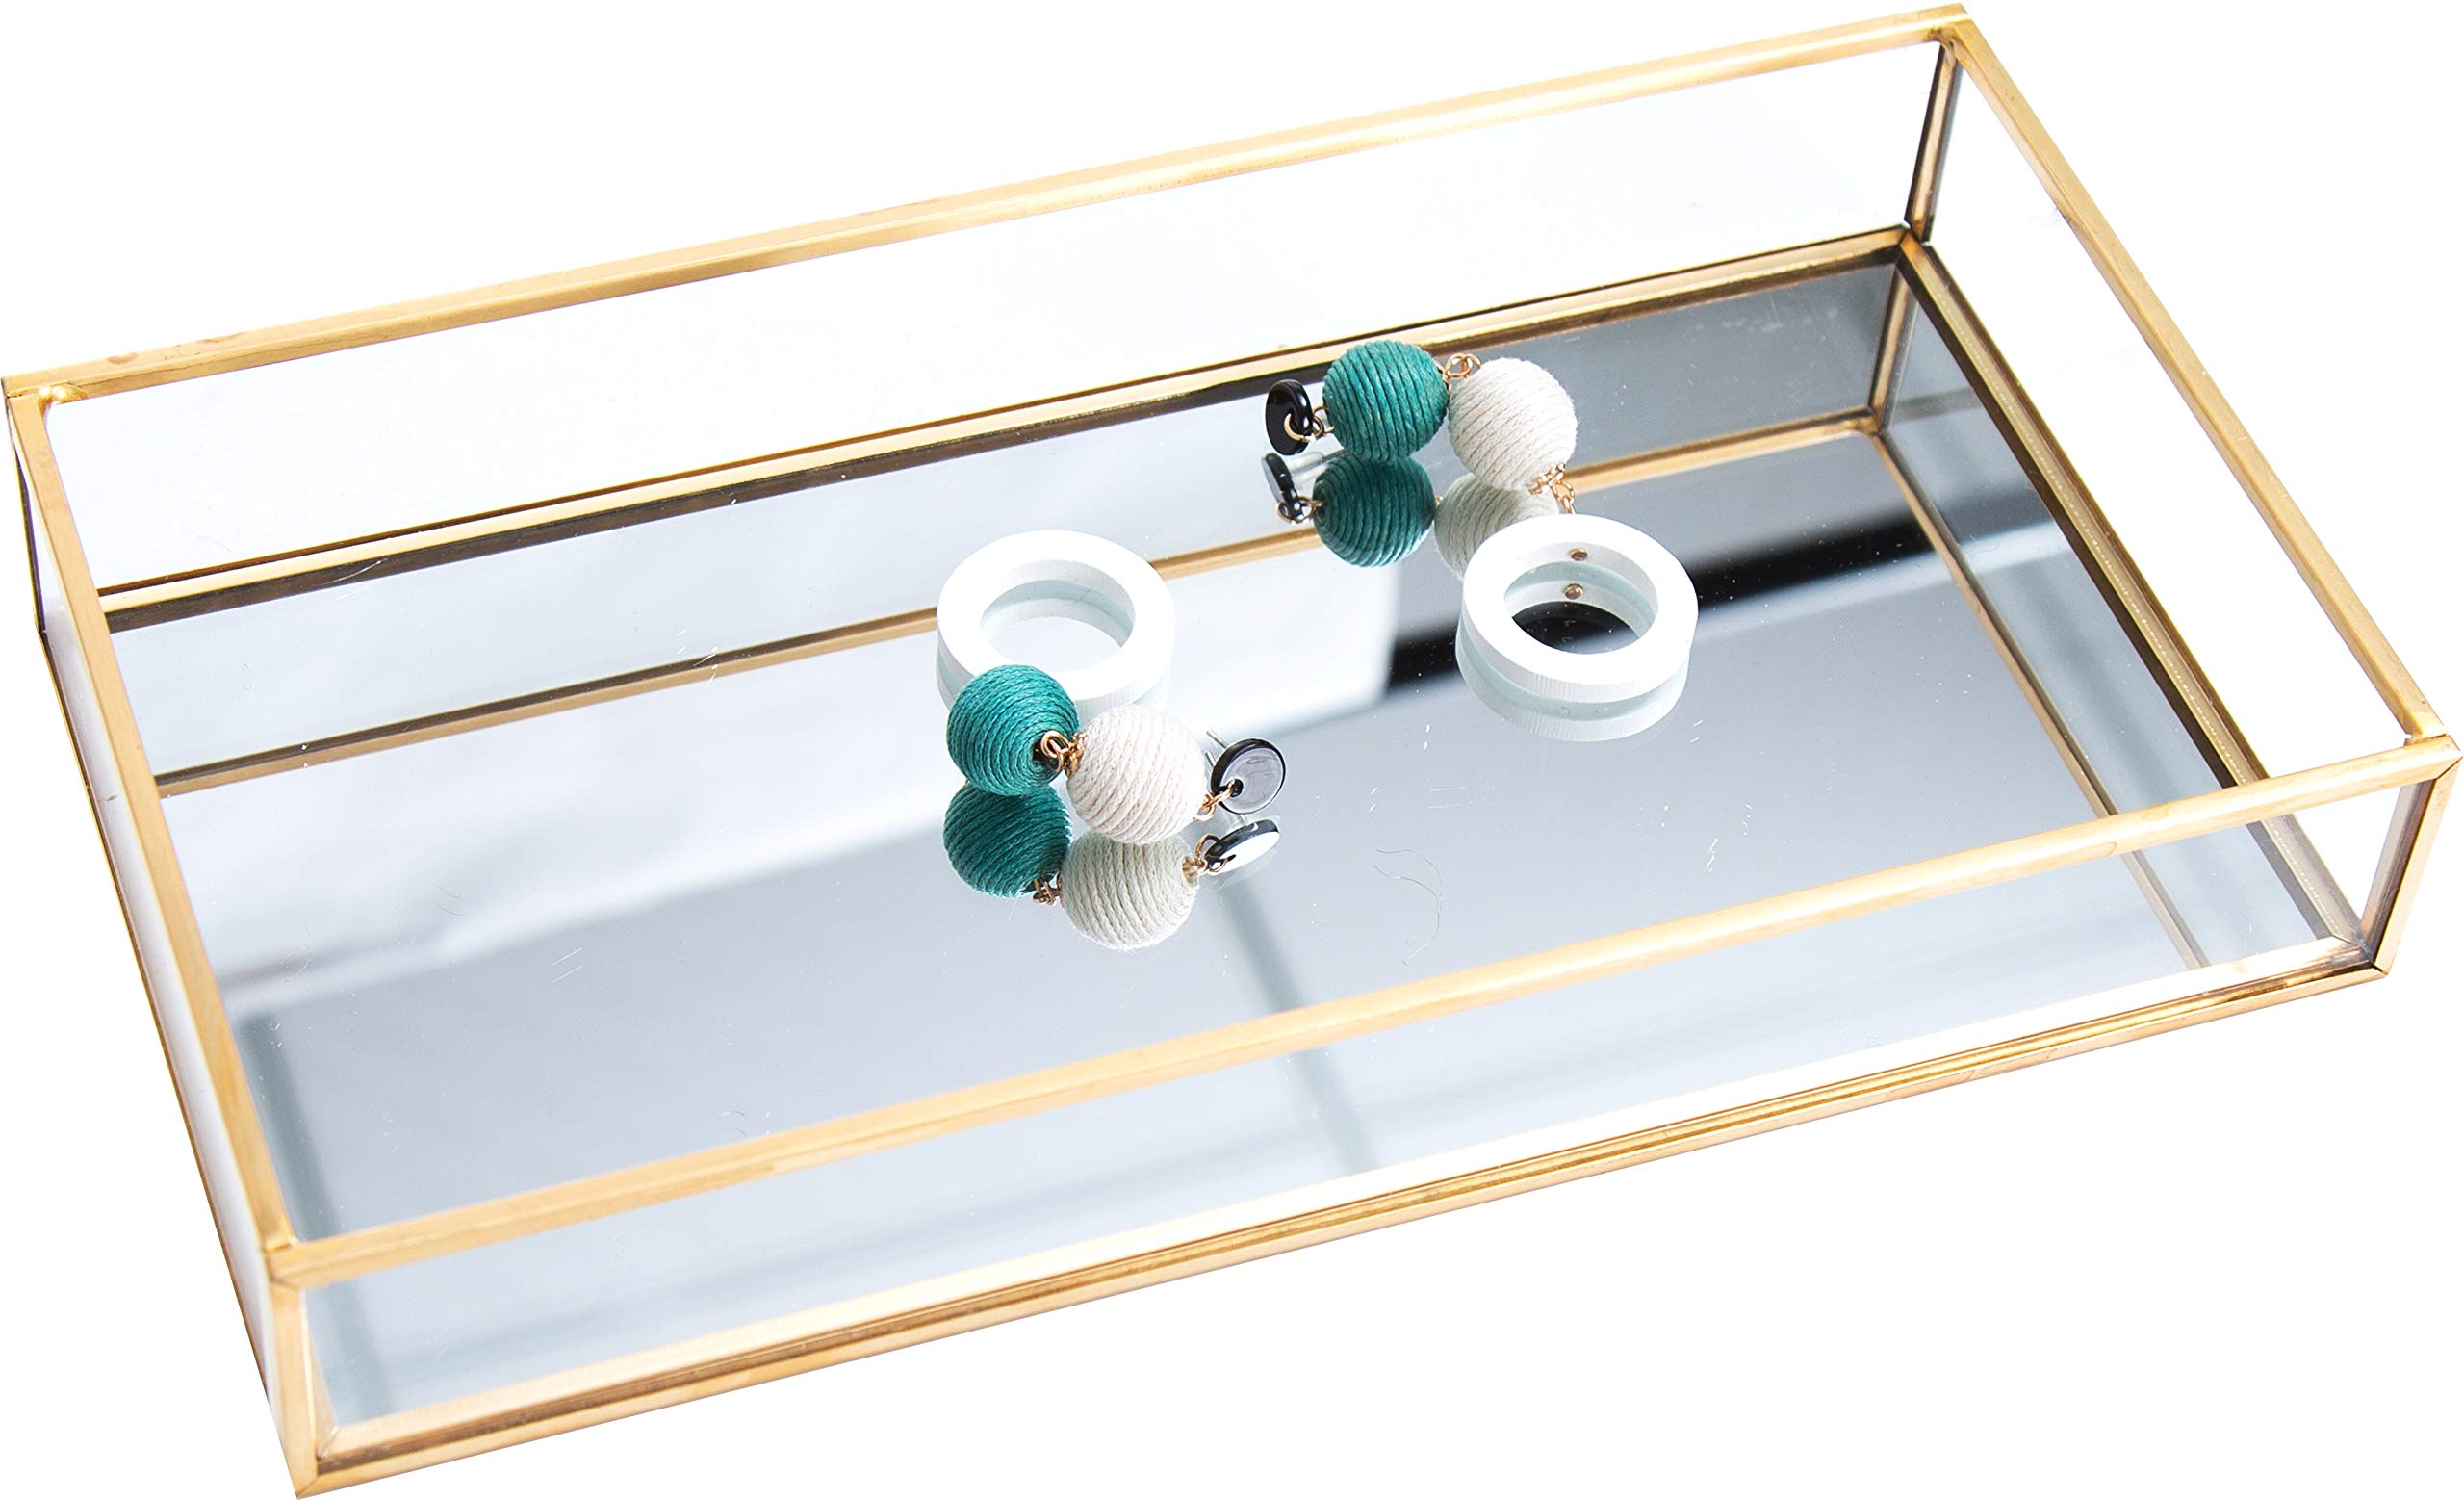 Cq acrylic Decorative Tray,Gold Mirror Tray for Jewelry,jewelry tray storage Organizer Makeup Tray for Vanity, Dresser, Pack of 1